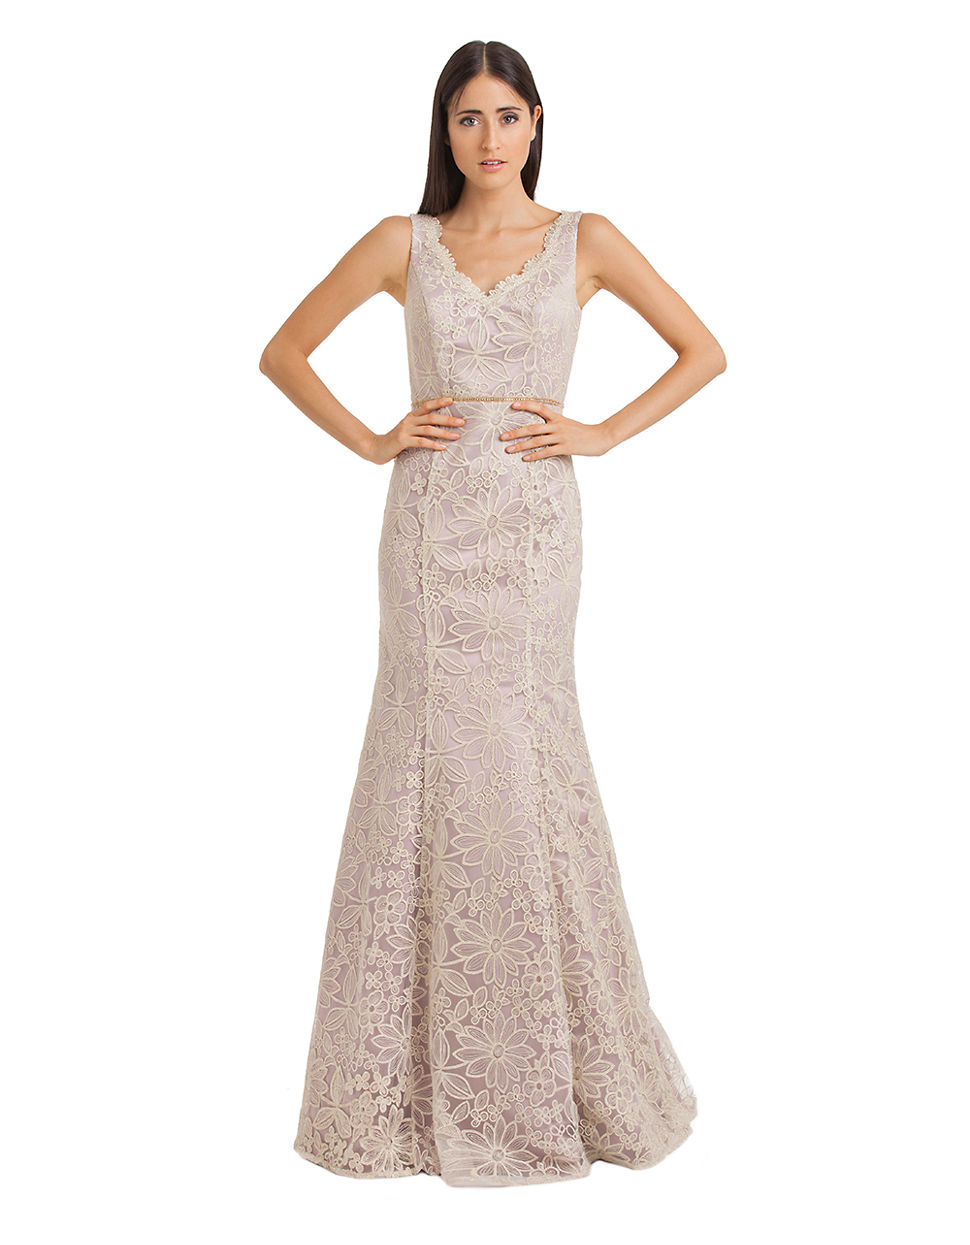 Lyst - Js Collections Floral Embroidered Fit And Flare Gown in Metallic